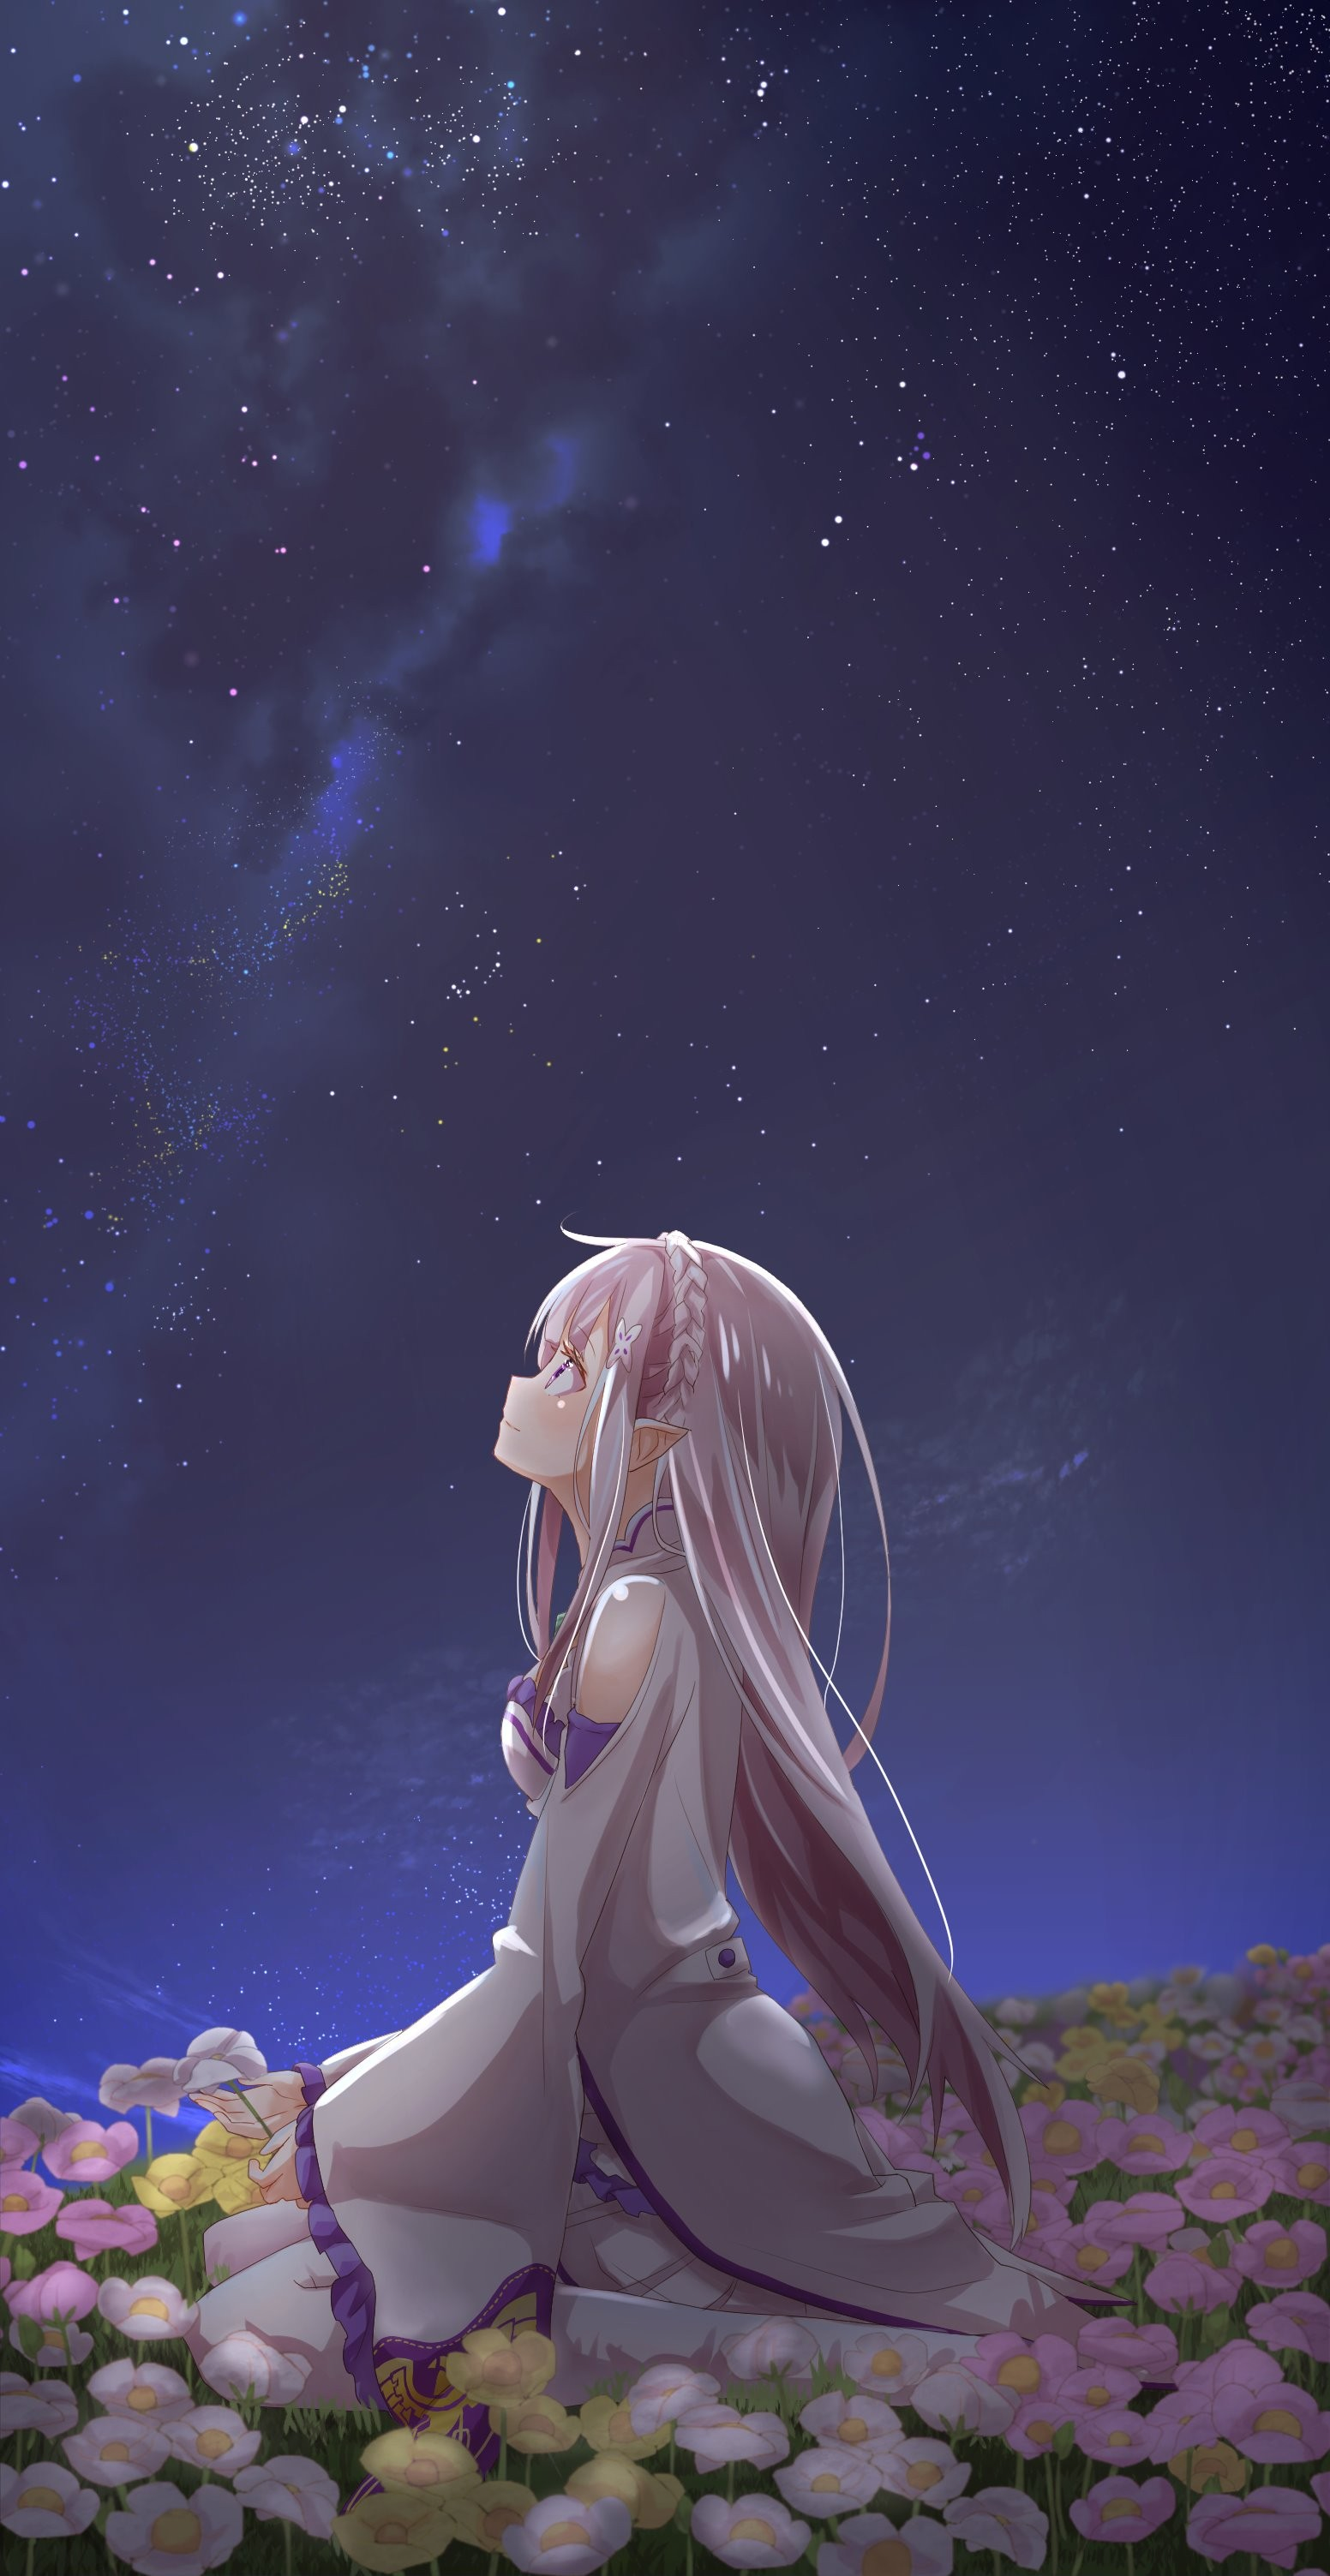 4chan Anime Wallpapers Posted By Samantha Simpson